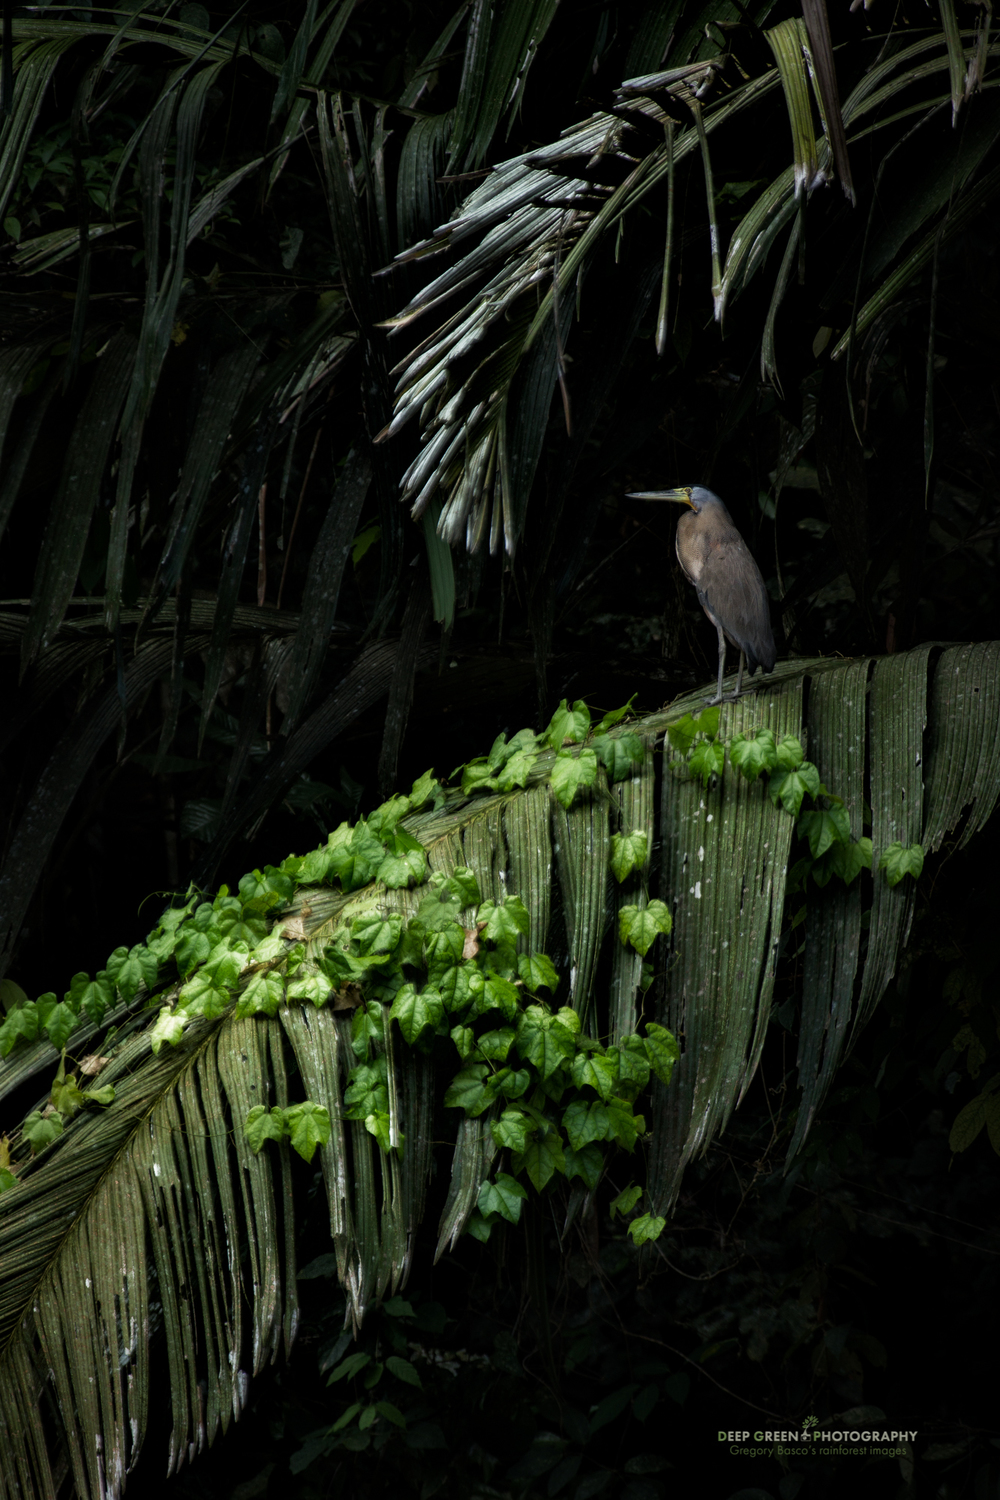 Palms & Heron While in Costa Rica's Tortuguero National Park shooting for my coffee table book last week, I had a number of photographic goals. Among them was a shot of the bare-throated tiger heron, a very common and photogenic member of the area's avifauna. I didn't want just a tight shot though; I really wanted an image that showed the lush vegetation of the park but included a heron. I was rewarded one morning when the motor failed on the boat I was in. While drifting around waiting for a mechanic to reach us, a tiger heron flew into a palm tree that was draped with a nice green vine. I shot some photos as soon as the heron flew in, but as we drifted away, I was able to include more of the scene for a pleasing composition. For me, it's an image that really gives the deep forest, Amazon sort of feel that is the essence of Tortuguero. More importantly, my book publisher agreed!